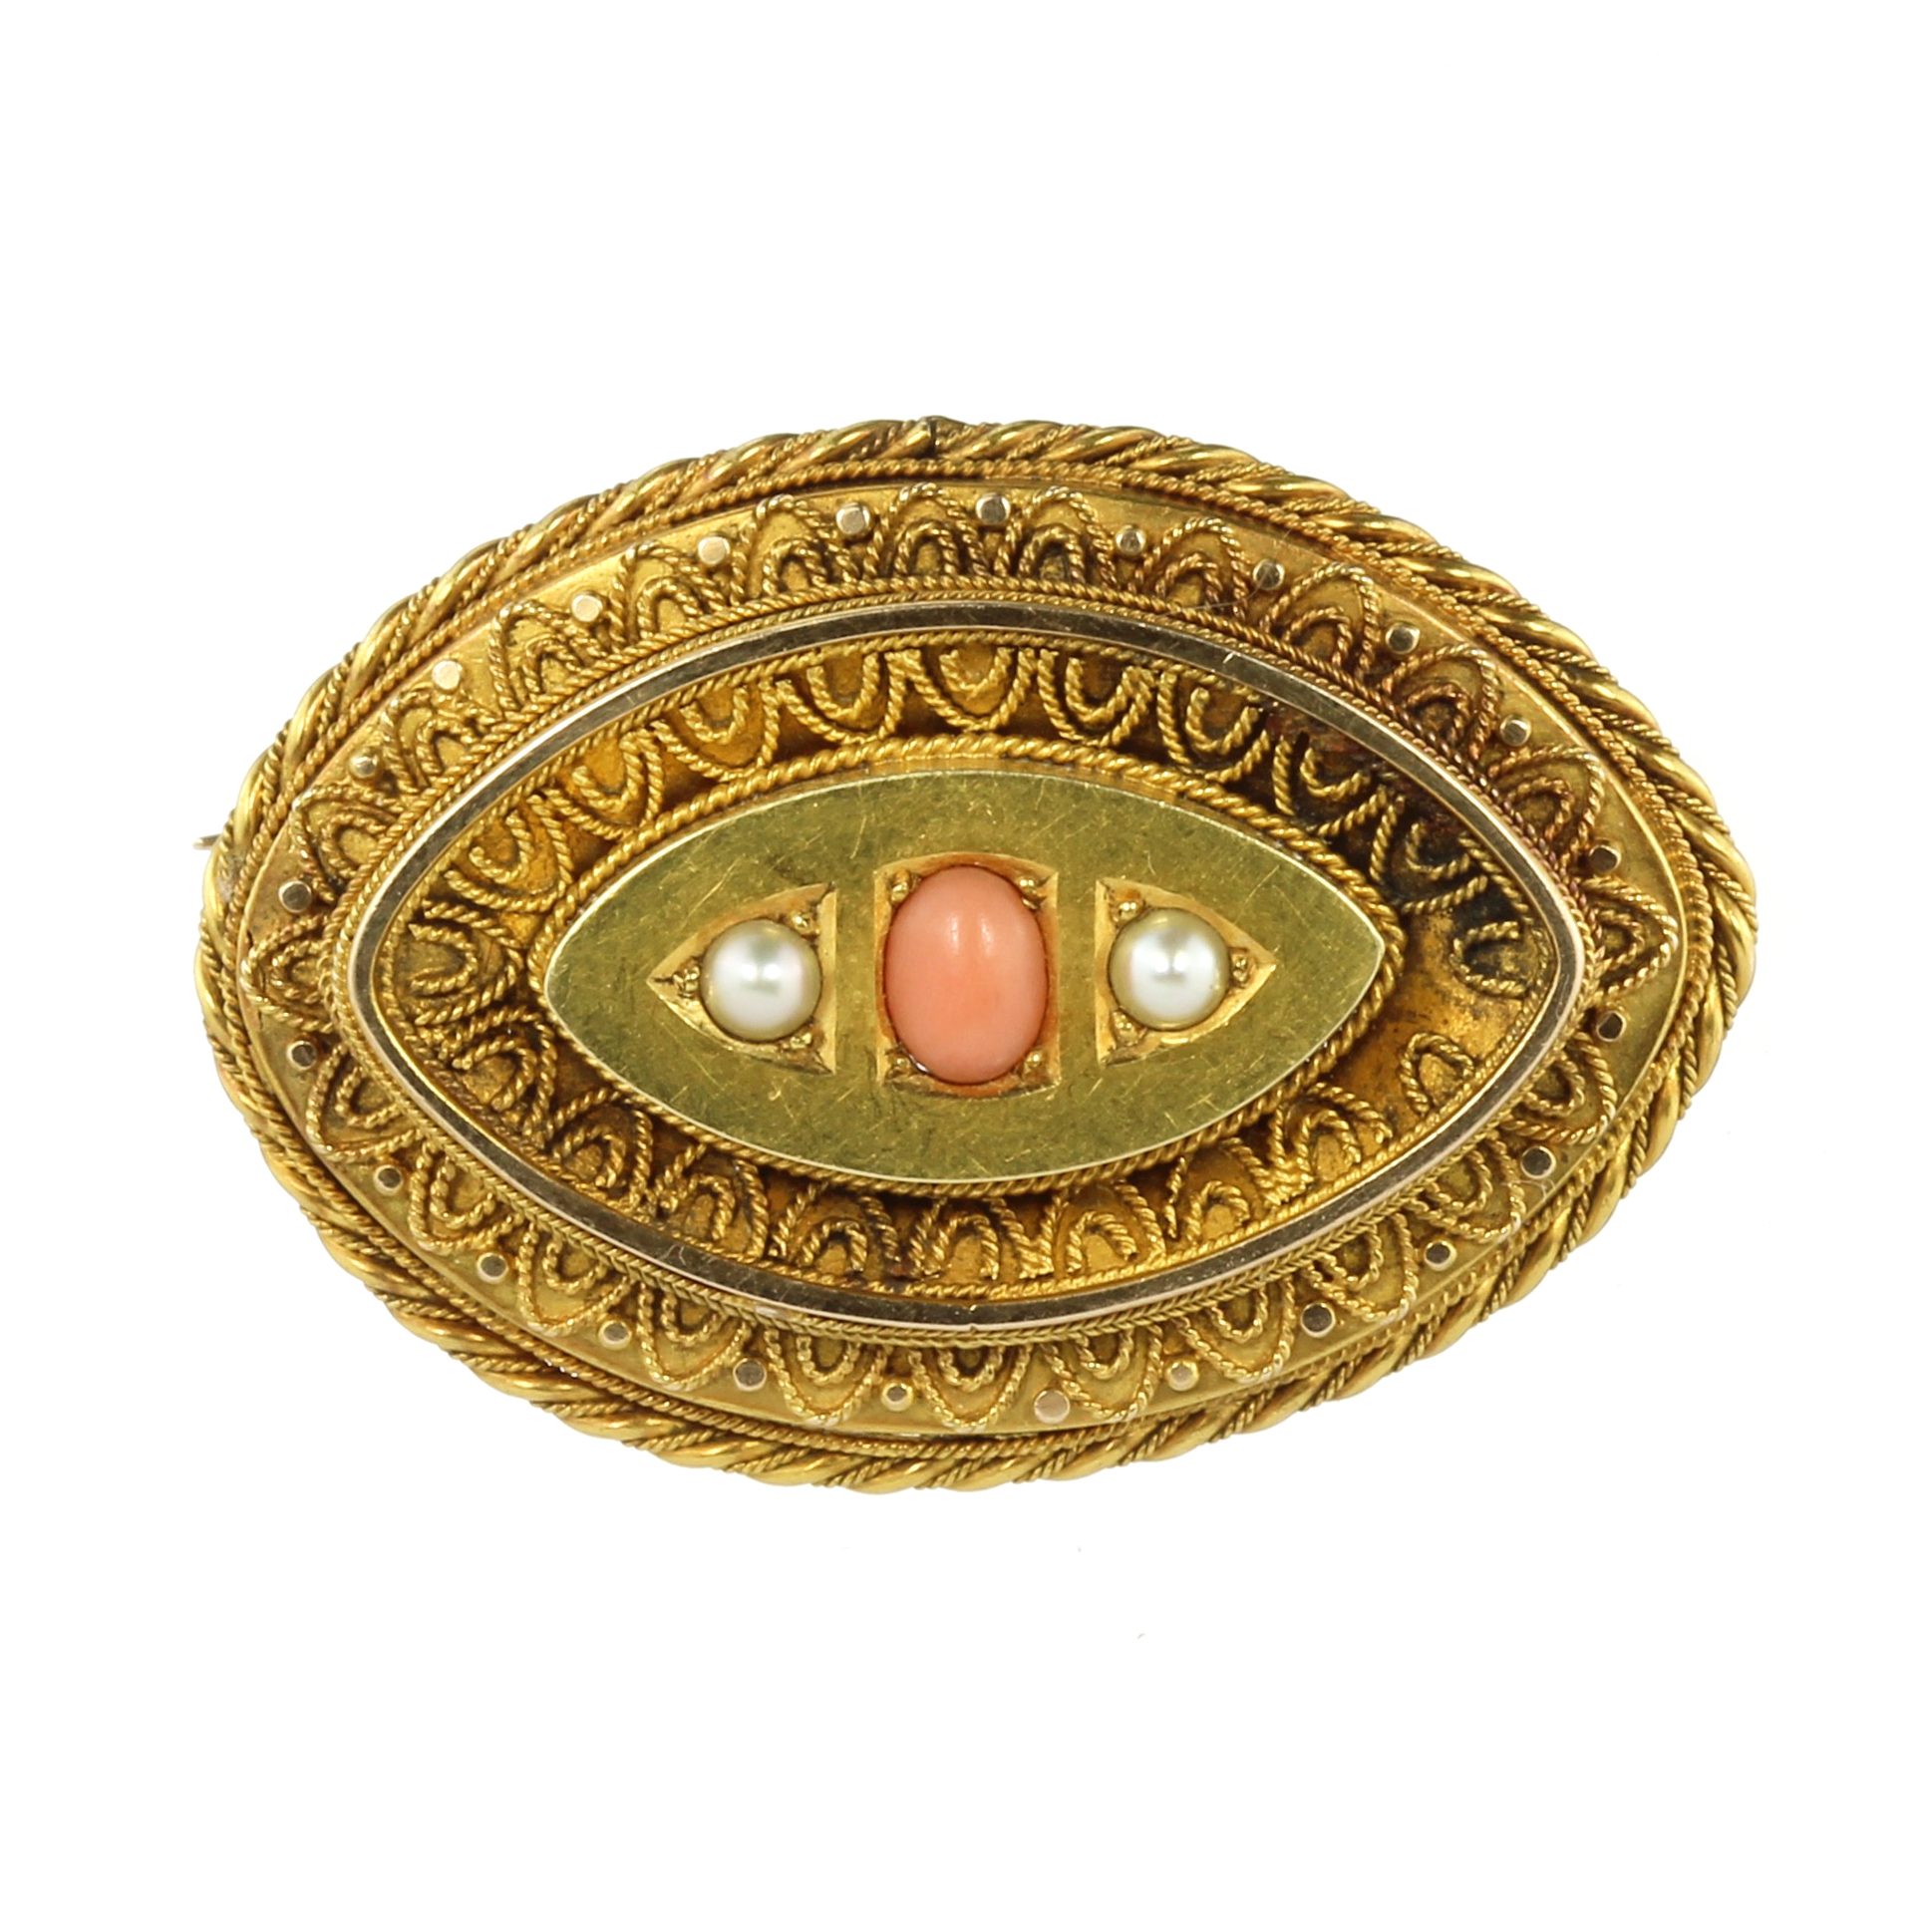 AN ANTIQUE CORAL AND PEARL MOURNING BROOCH, 19TH CENTURY in high carat yellow gold, the navette face